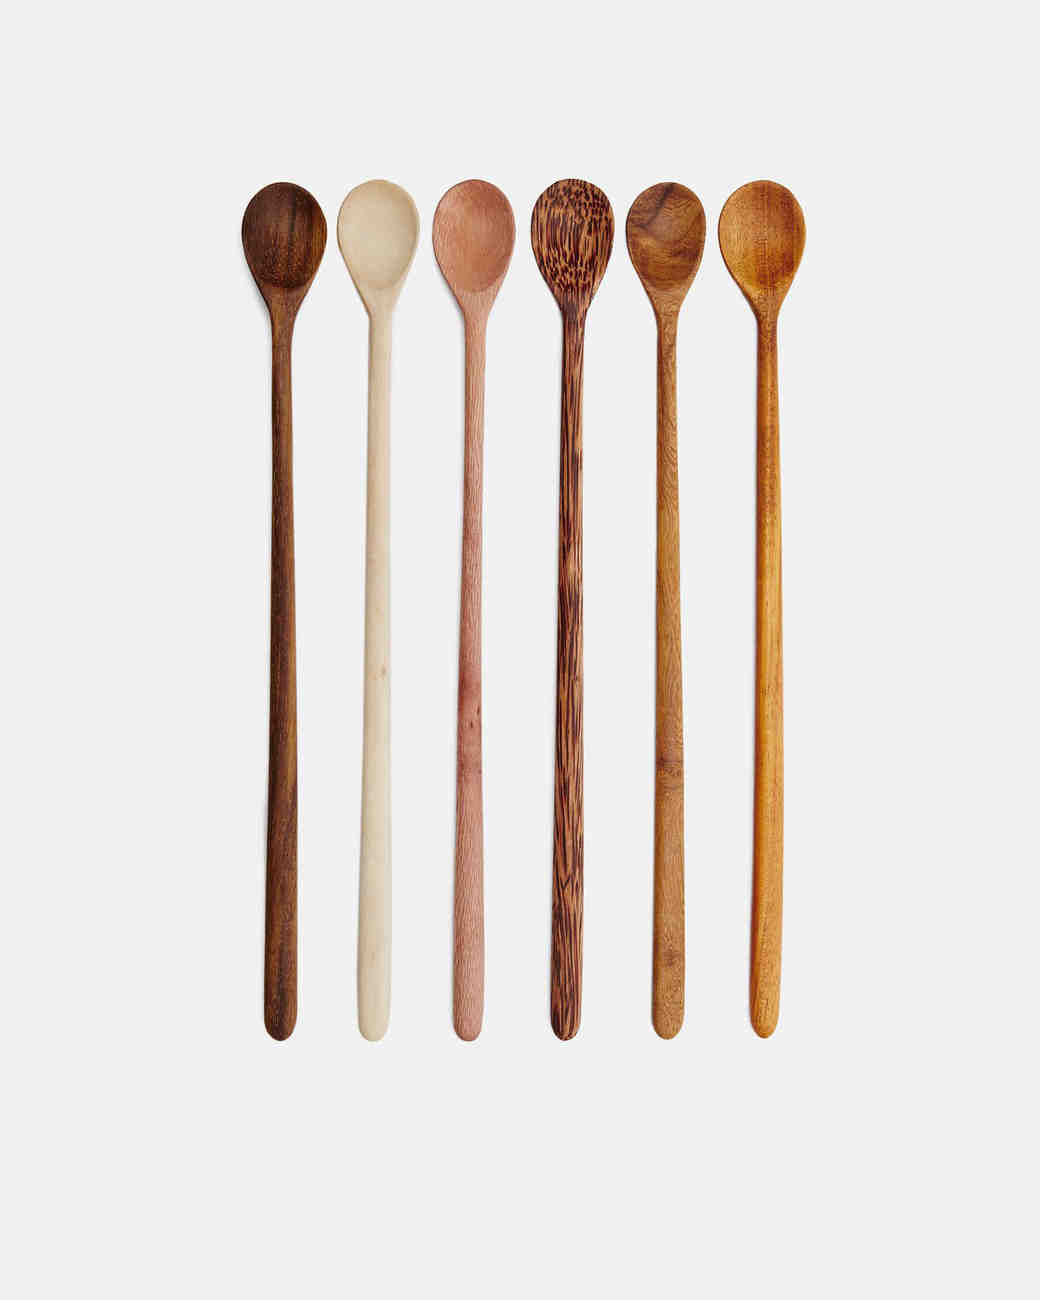 wood anniversary gift spoons